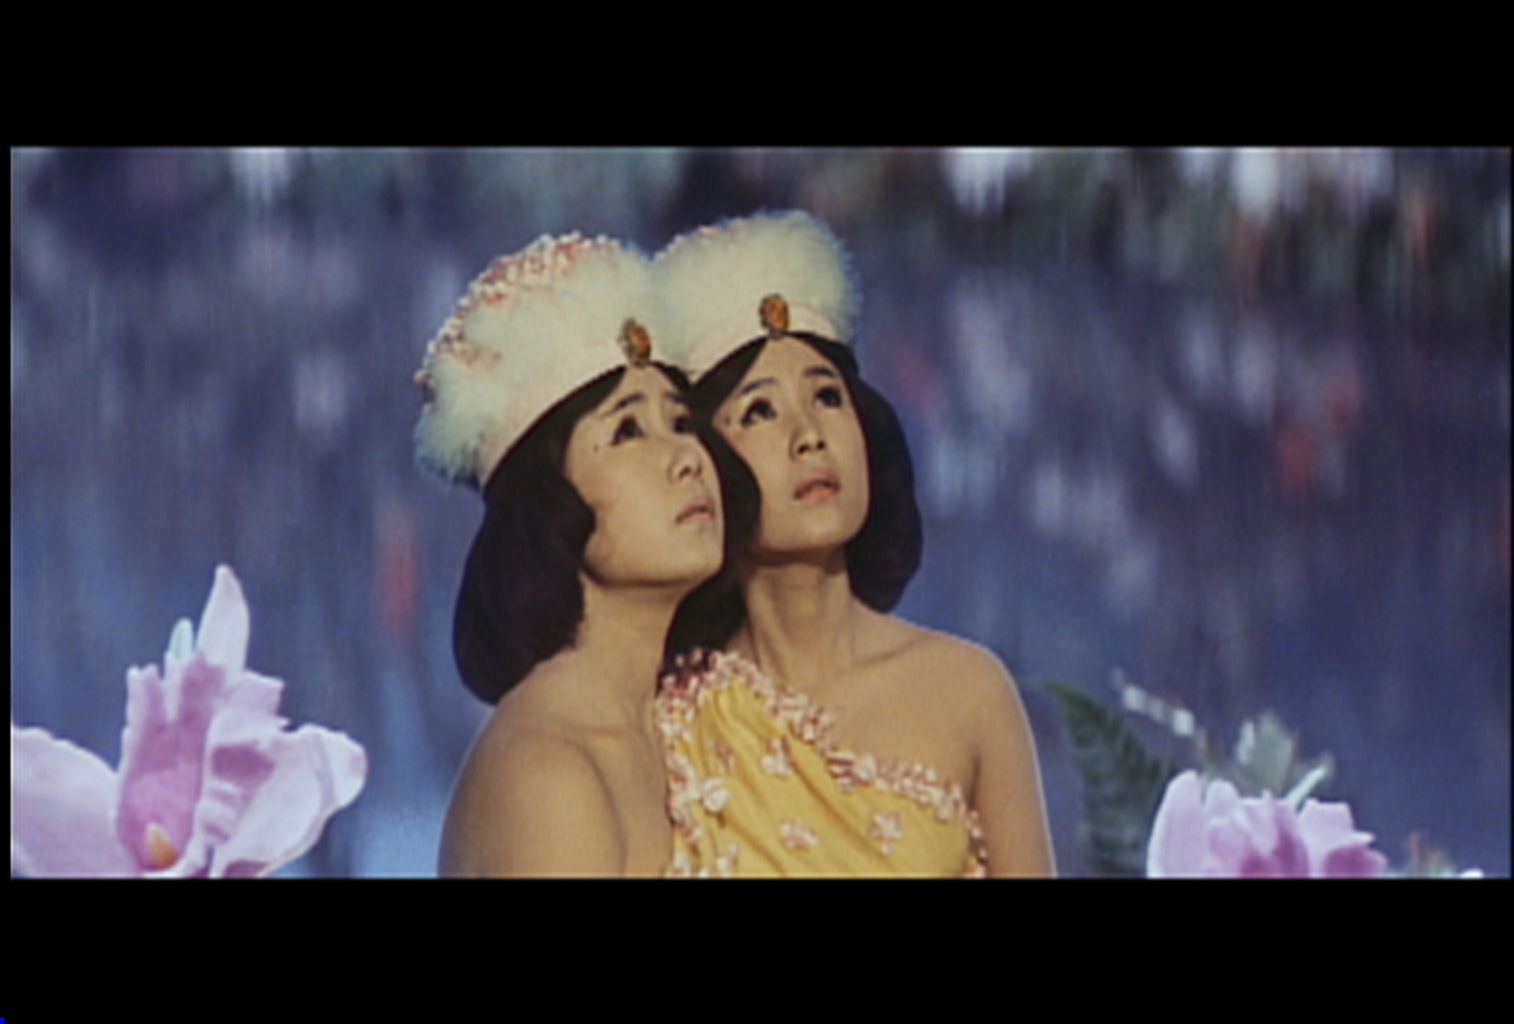 Singers Yumi and Emi Ito as Mothra's twin fairies.